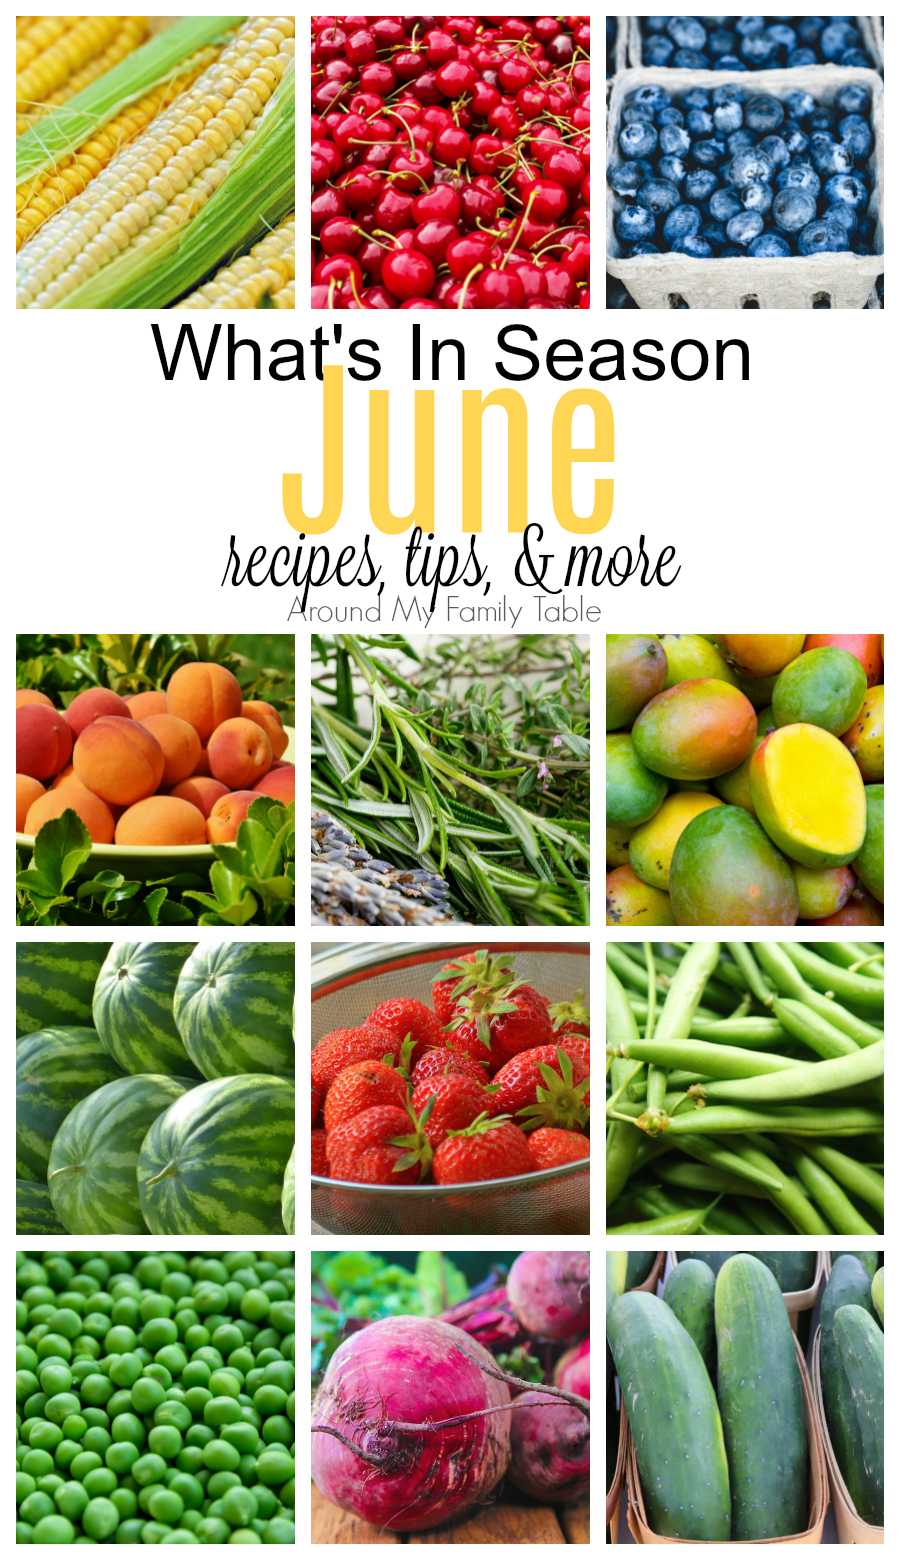 June has is a mixture is full of summer berries and stone fruit, with a few vegetables thrown in too. Find out all about June Seasonal Produce in this June -- What's In Season Guide. #seasonalproduce #whatsinseason #eatseasonally